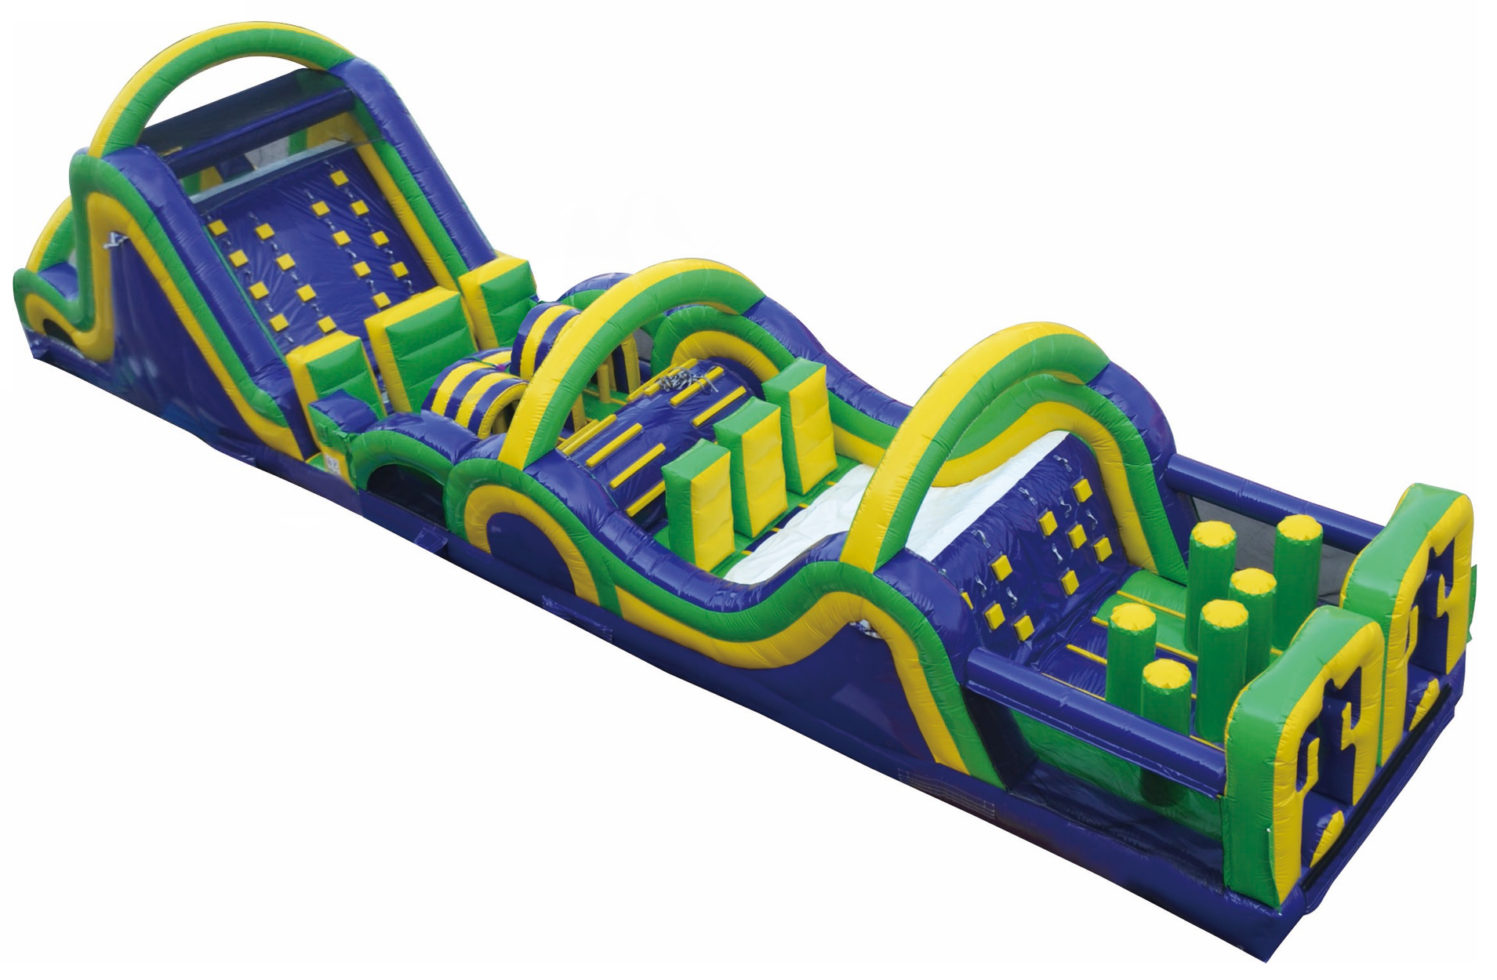 Radical 65 inflatable obstacle course